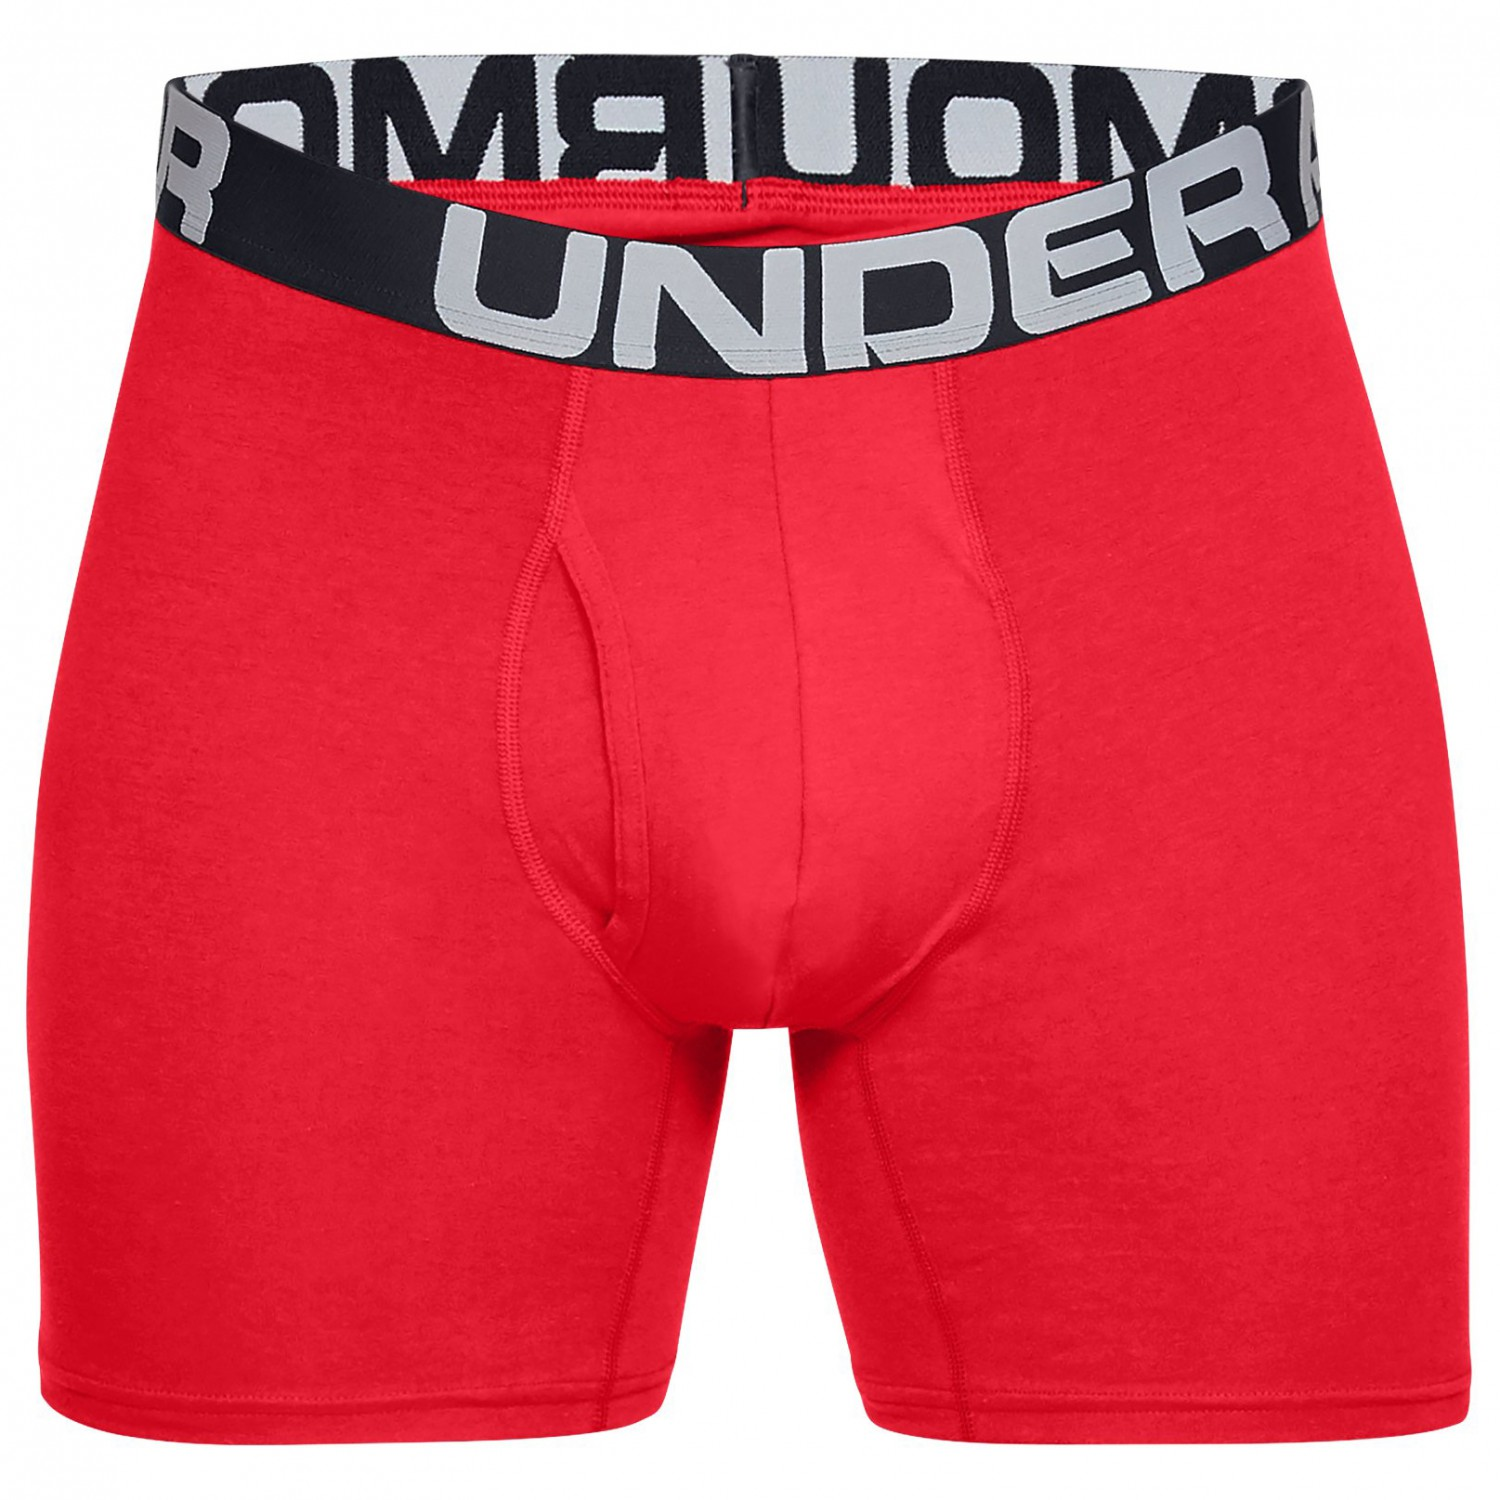 complete range of articles deft design complete in specifications Under Armour - Charged Cotton 6'' 3 Pack - Everyday base layer